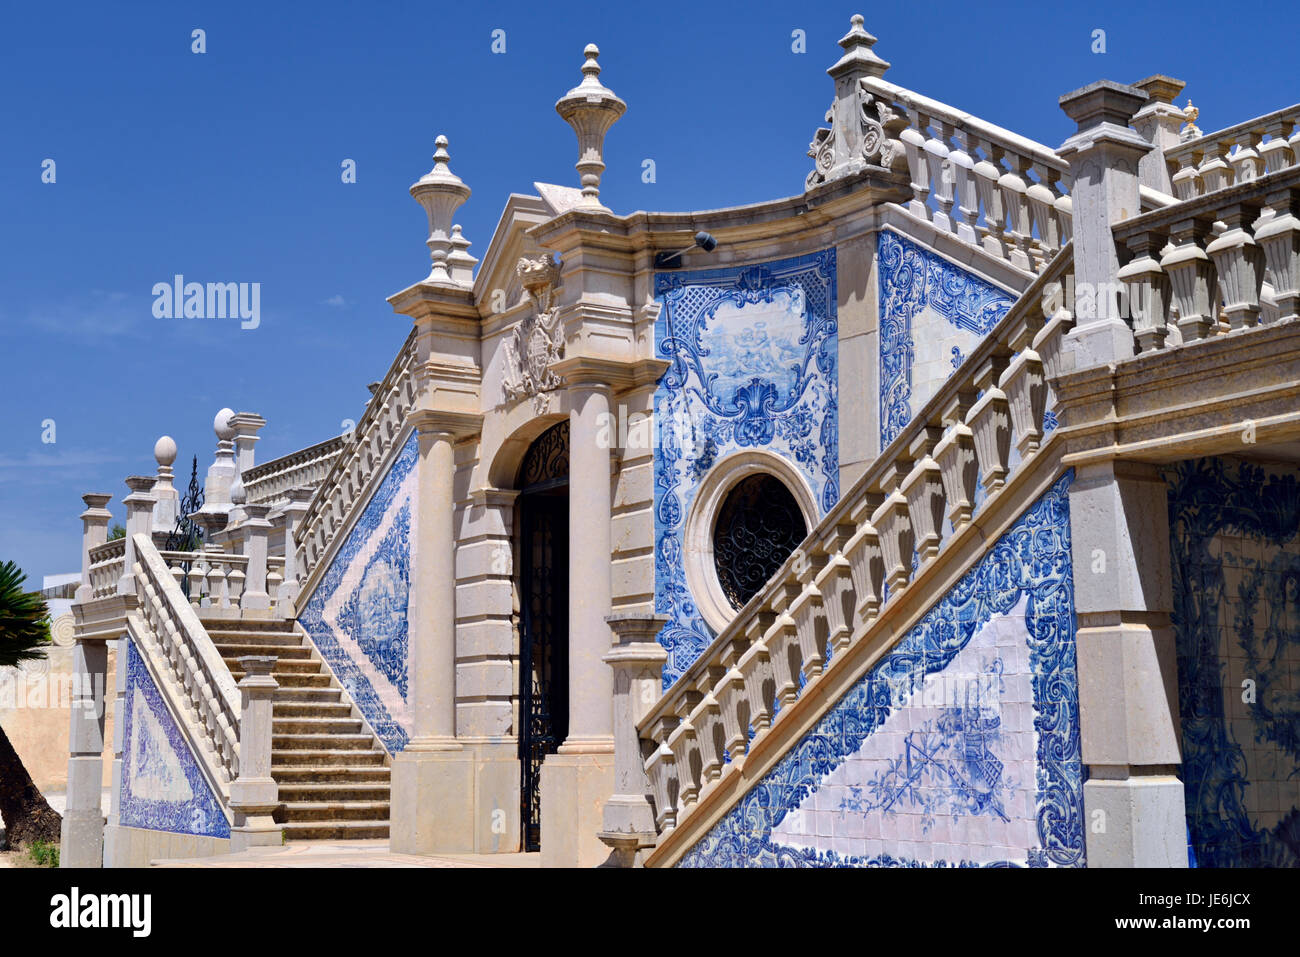 Portugal: Blue and white tiles as decoration on baroque staircase at Estoi Palace Stock Photo